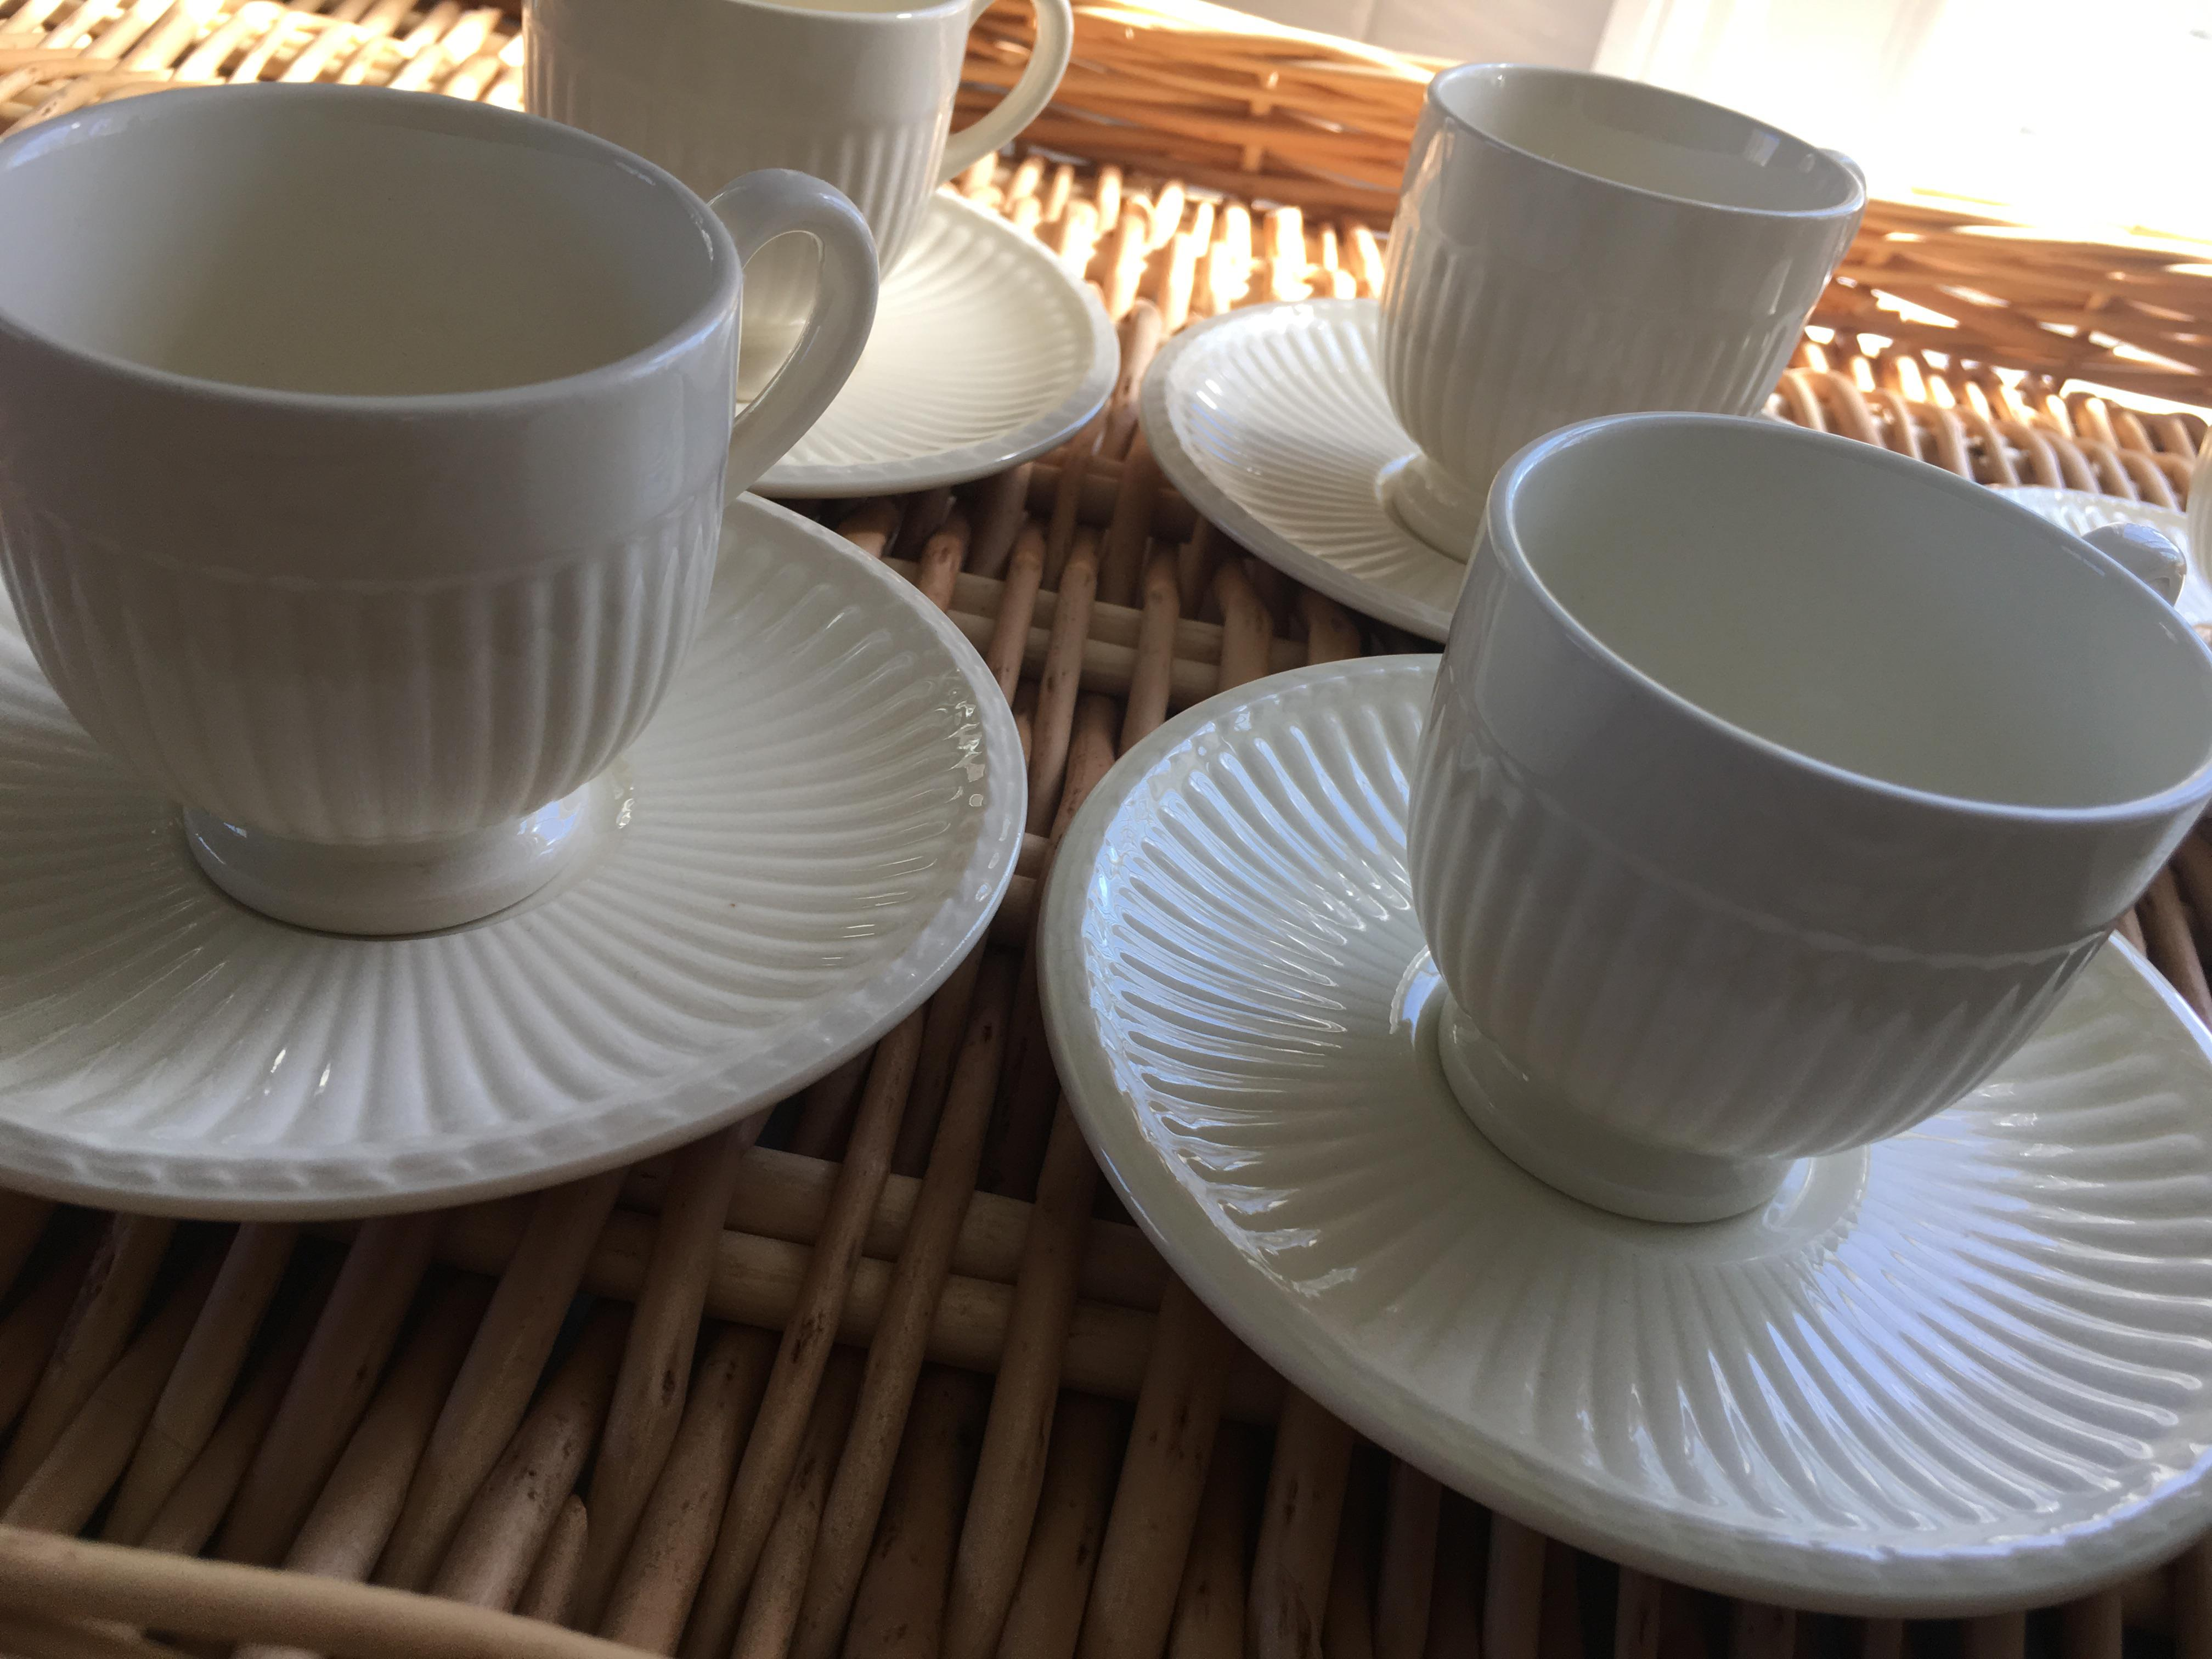 Wedgwood Edme Espresso Cup \u0026 Saucer - Set of 6 - Image 2 ...  sc 1 st  Chairish & Wedgwood Edme Espresso Cup \u0026 Saucer - Set of 6 | Chairish